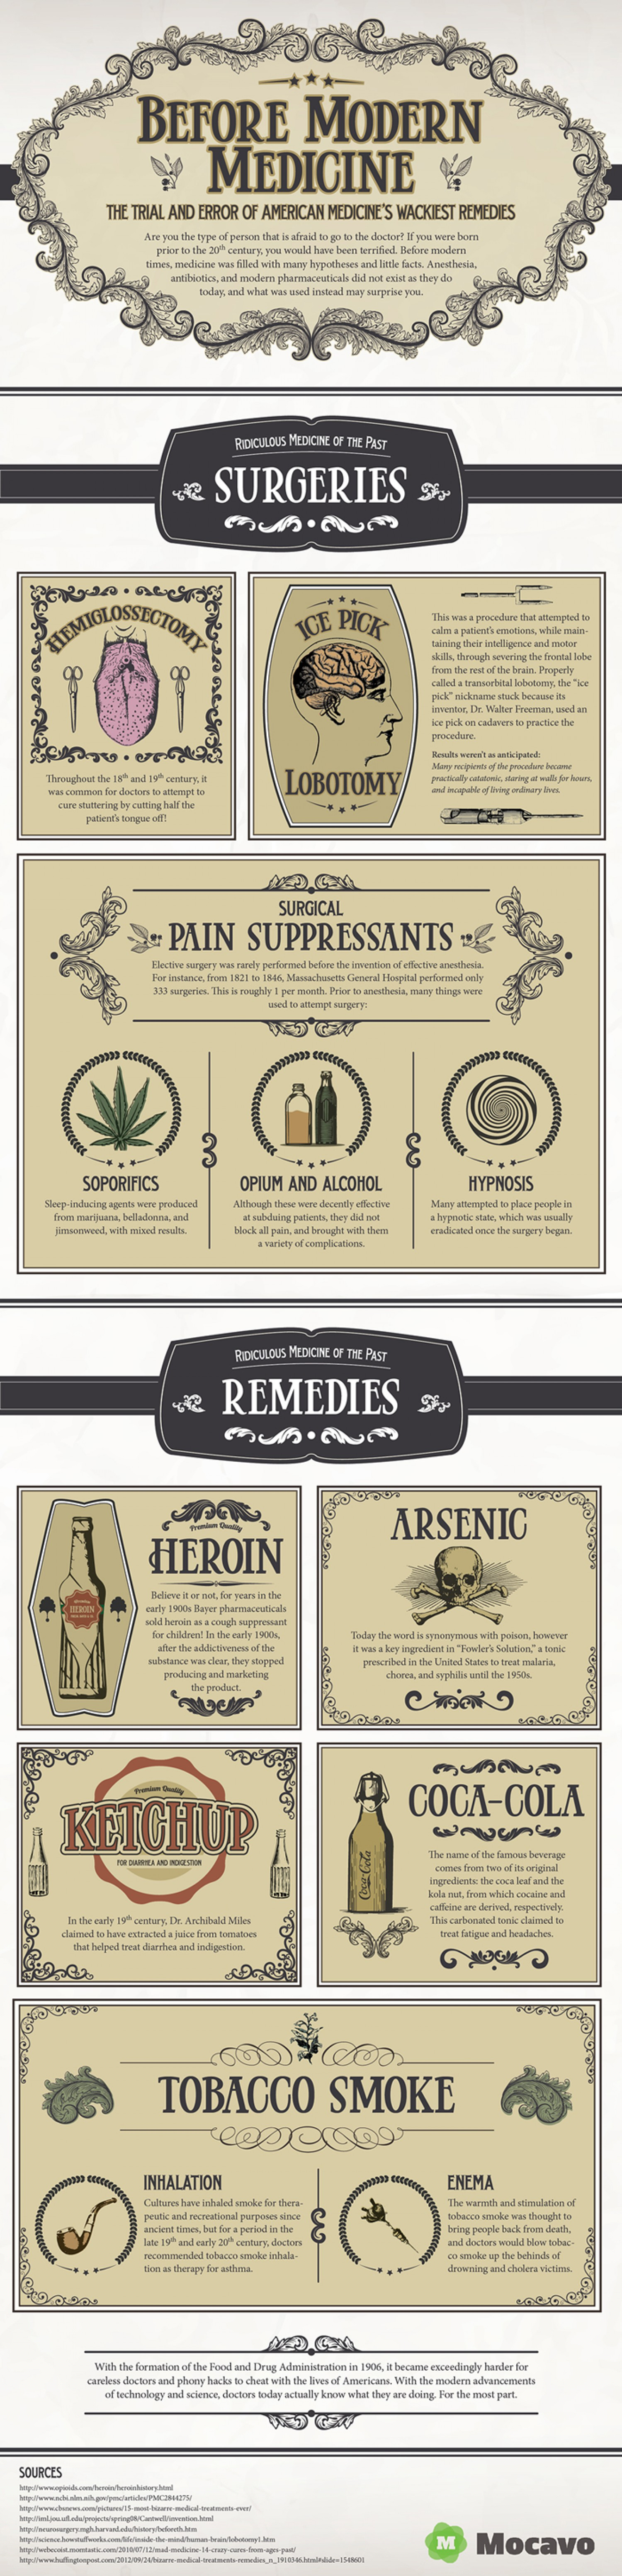 bad-medicine-a-history-questionable-medical-remedies--thumbnail_53728813bd384_w1500